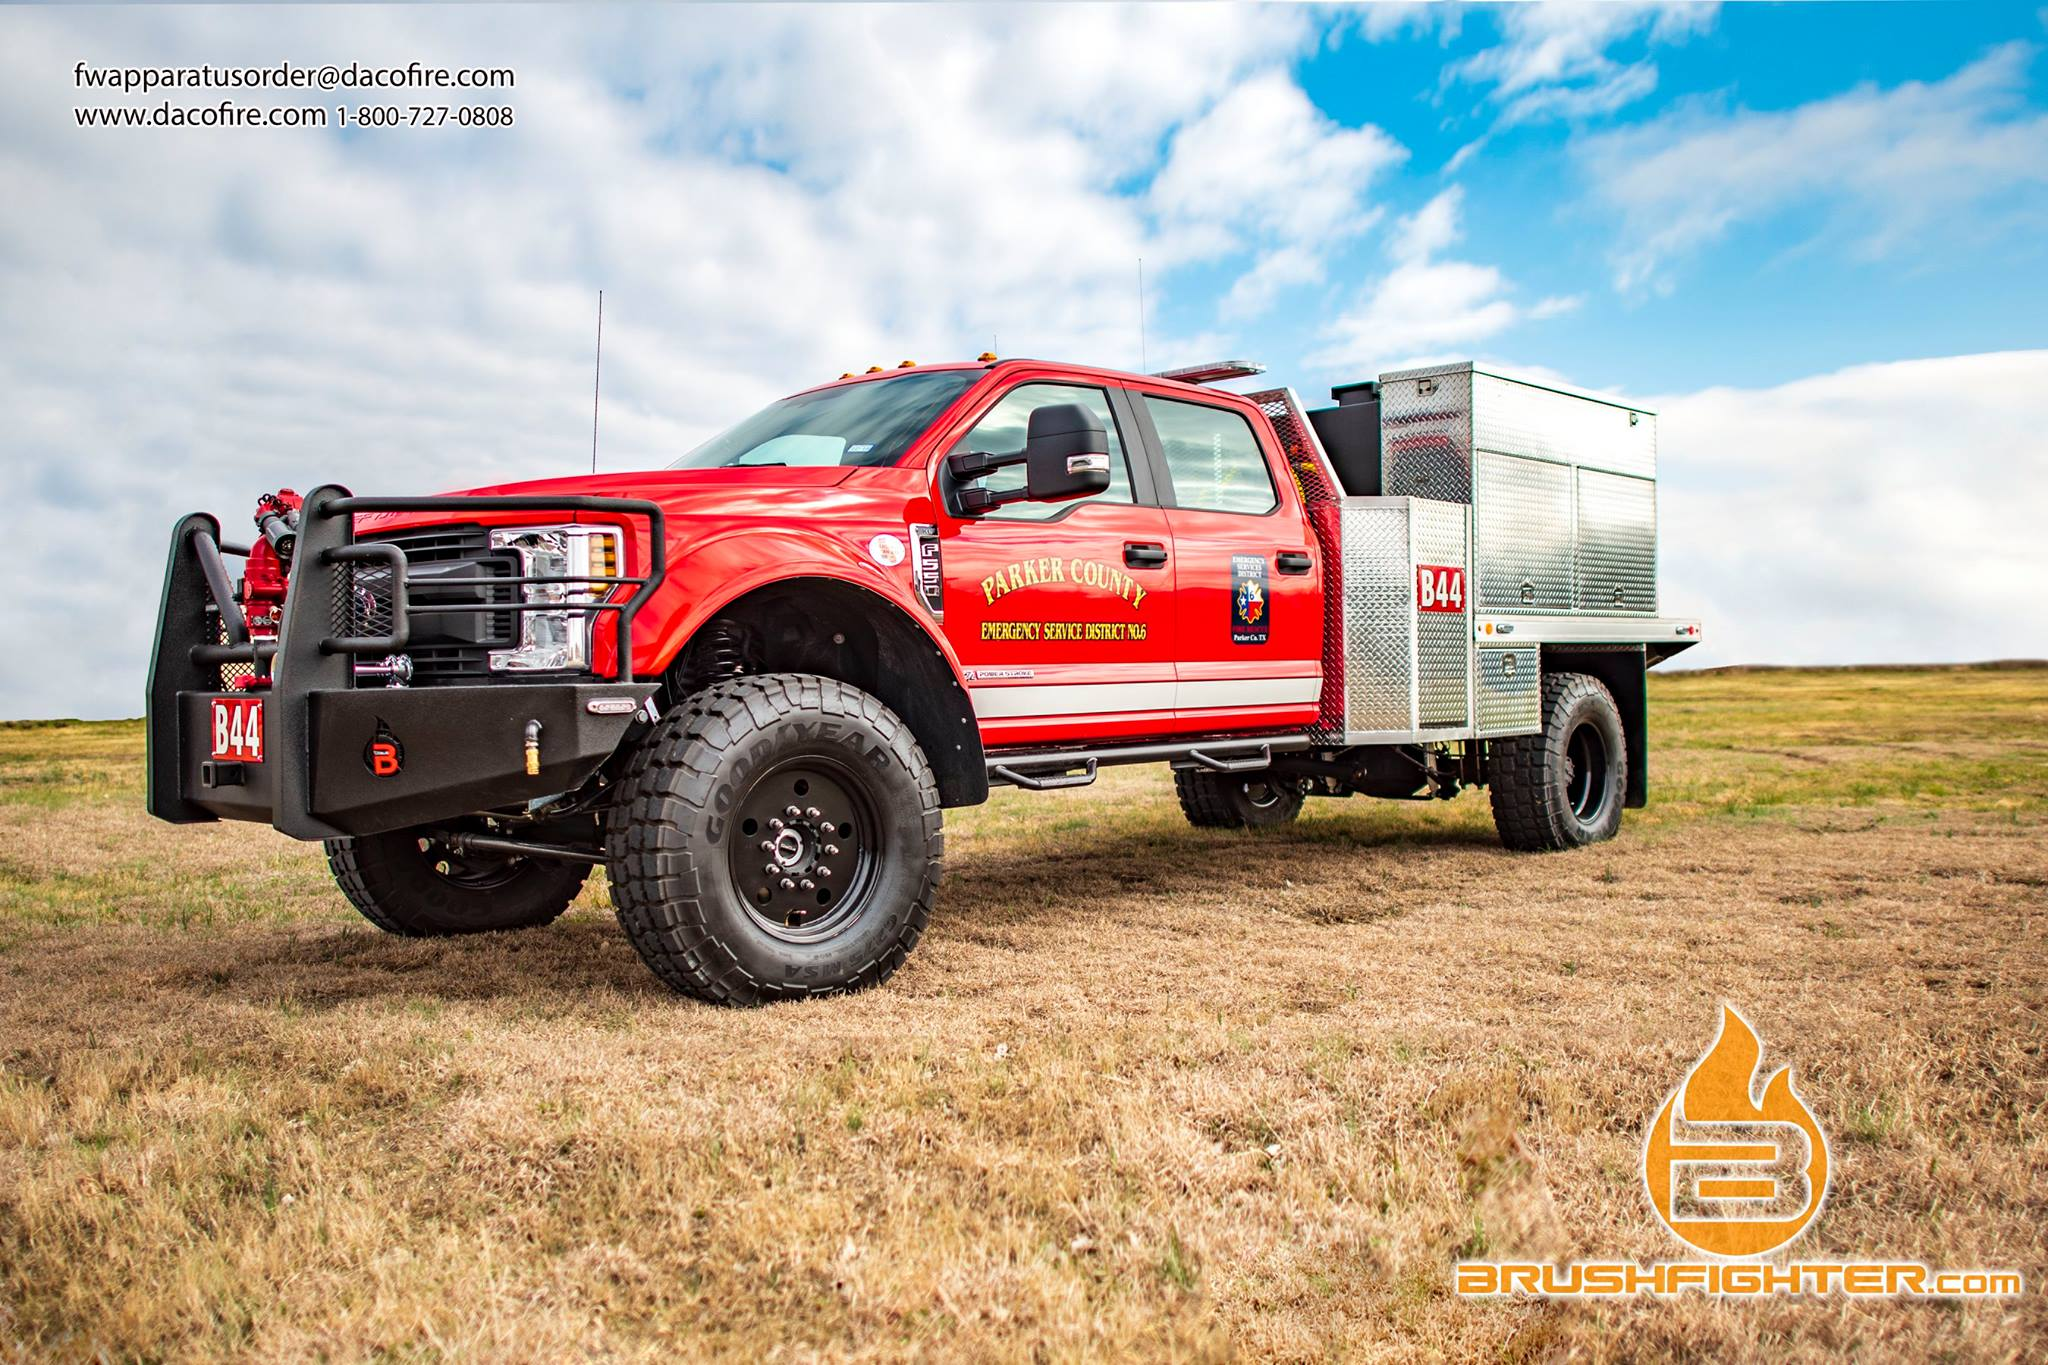 Five Star Ford Plano >> Dallas/Fort Worth Area Fire Equipment News